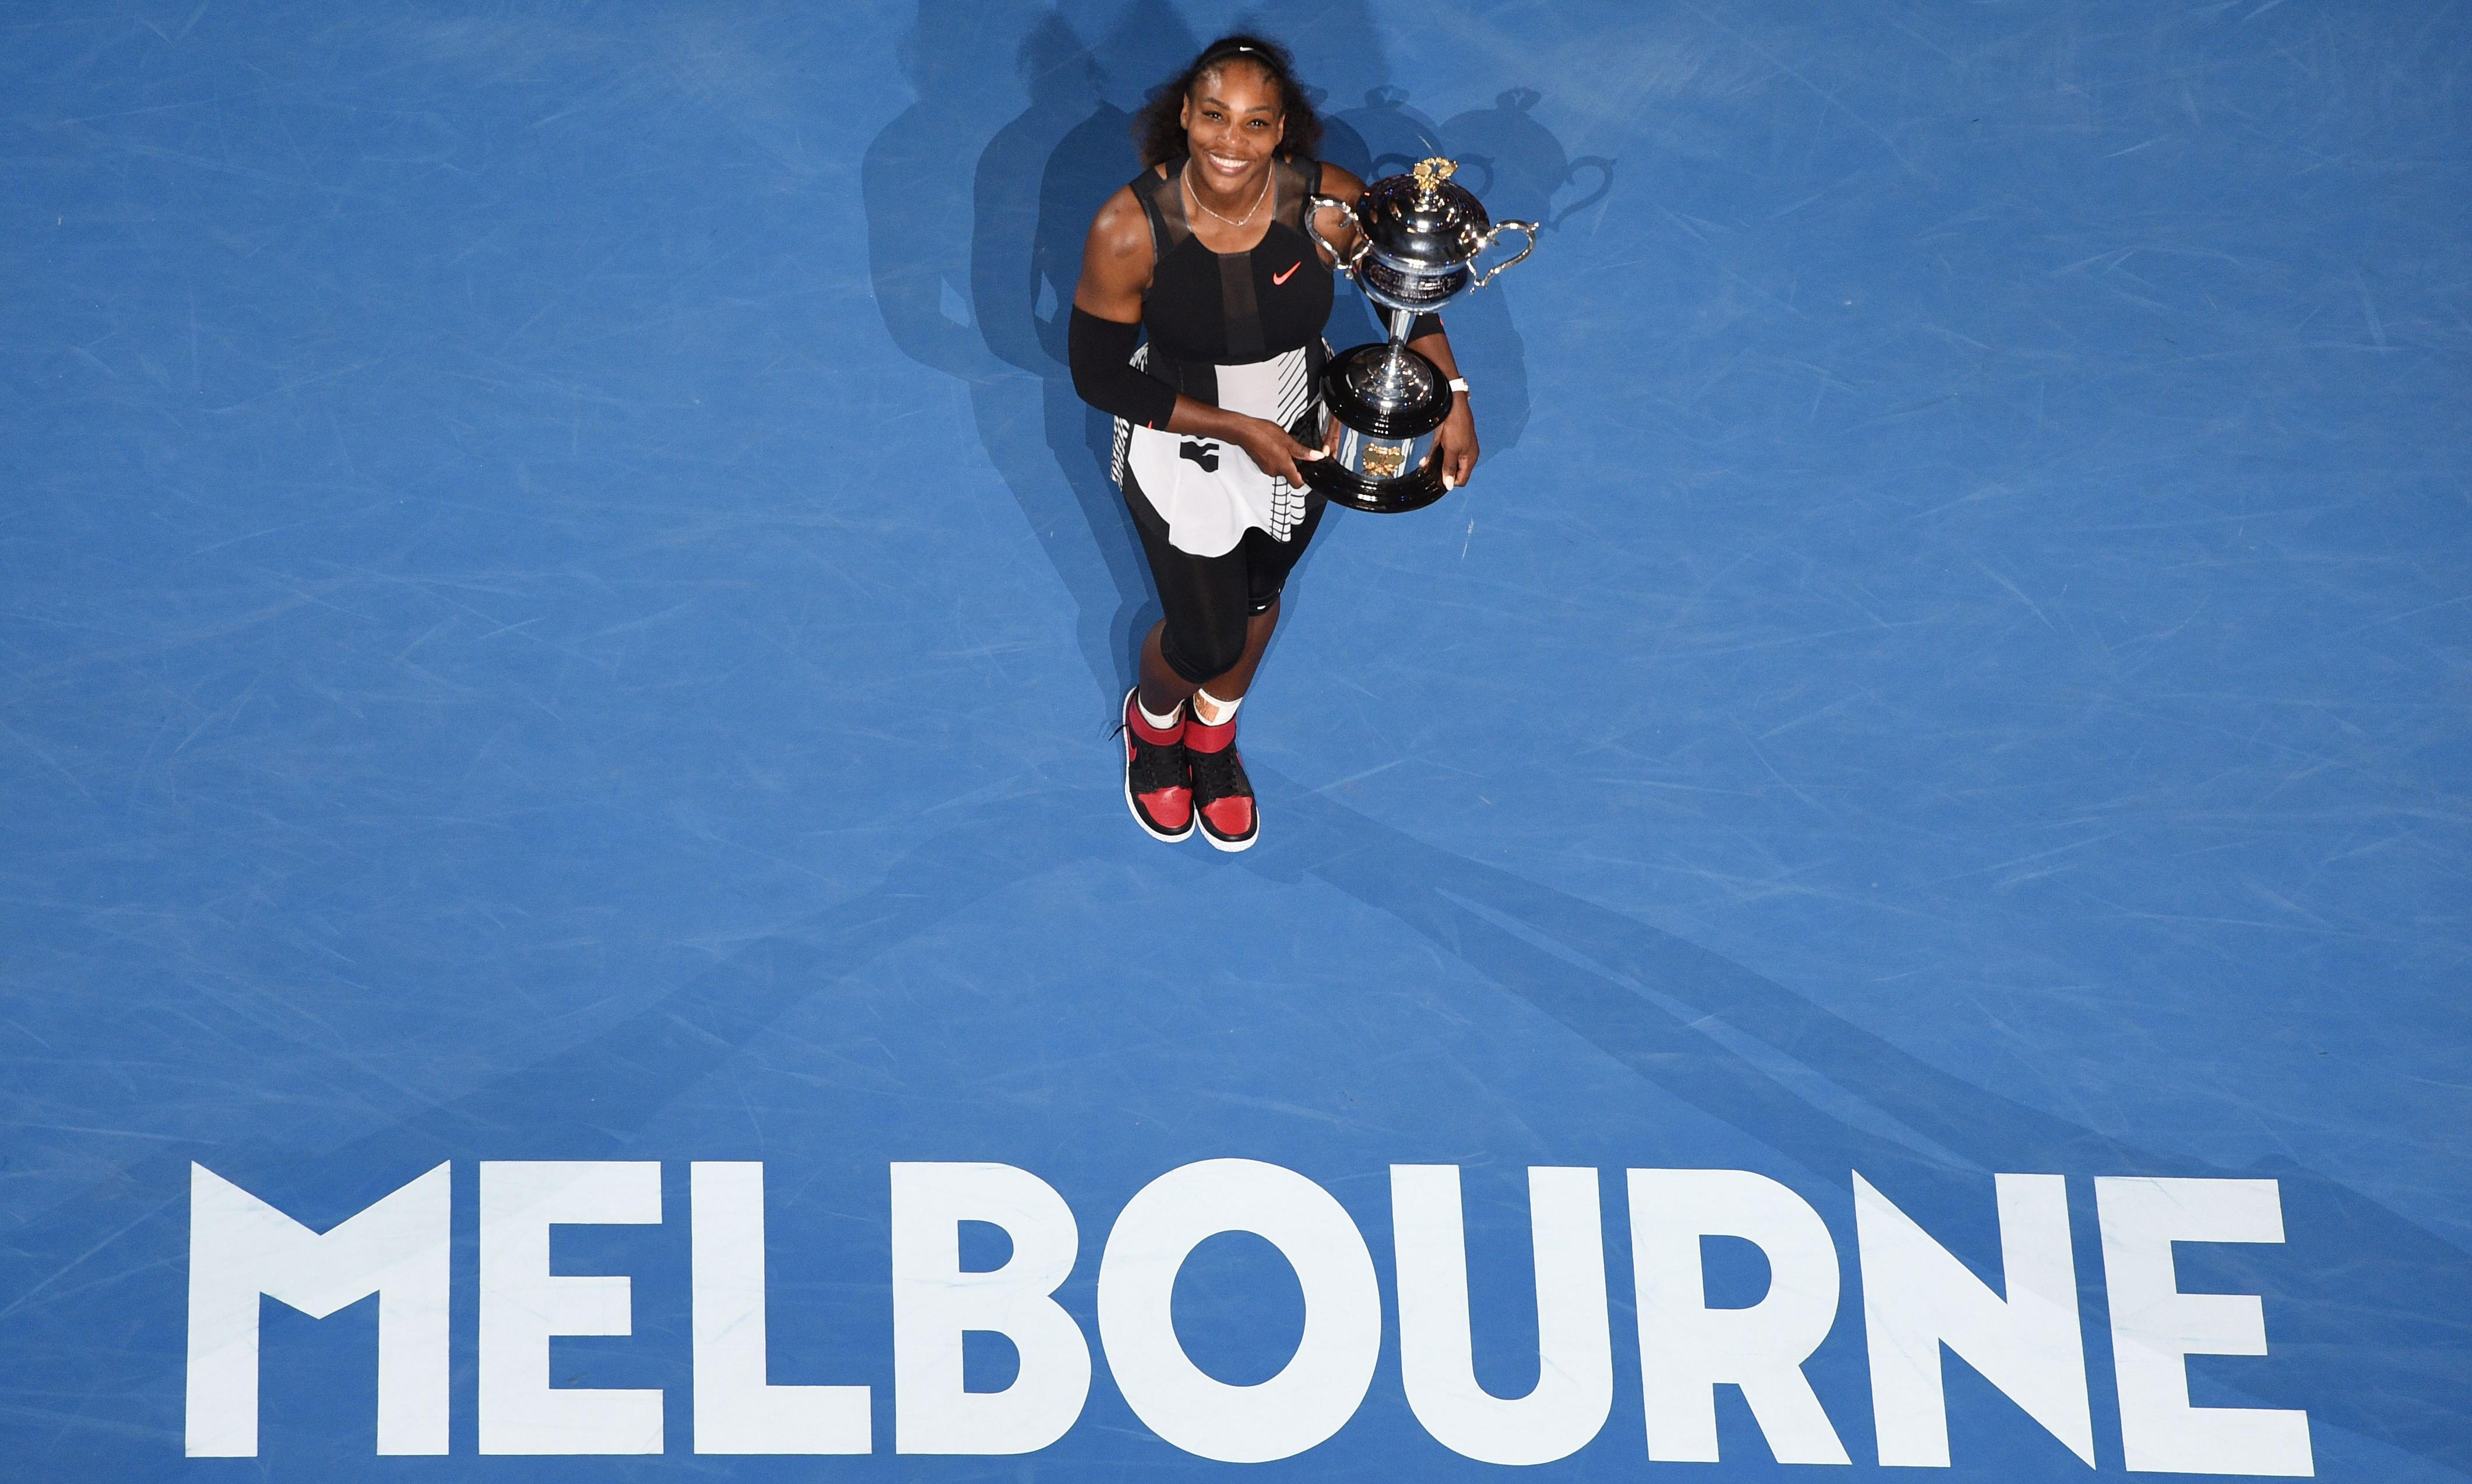 'Serena will be back': Australian Open director says Williams will defend title